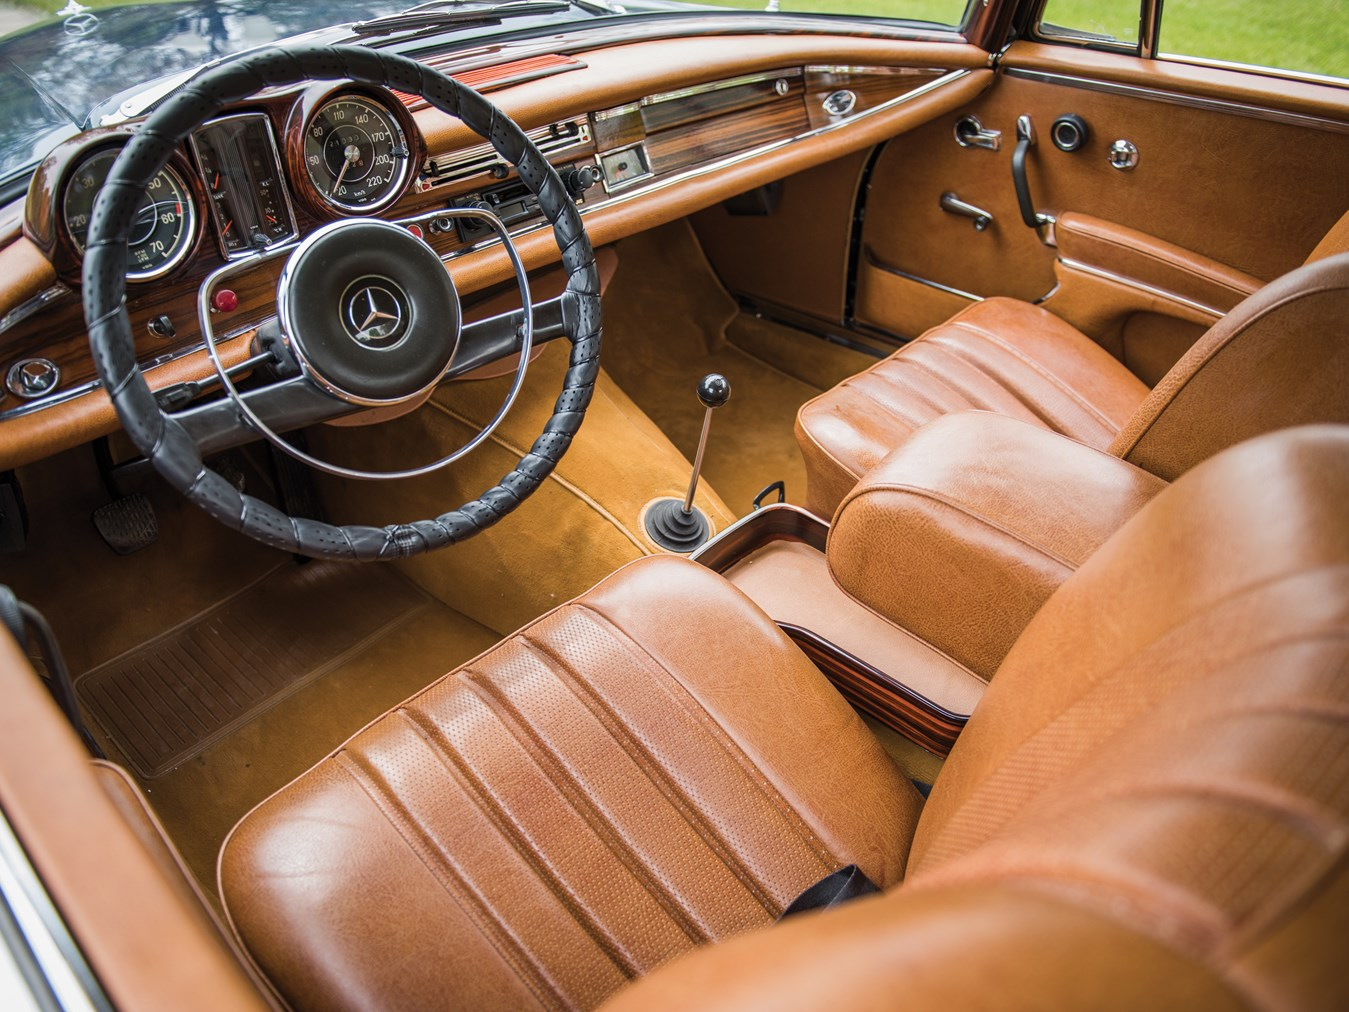 The manual transmission of this 1965 300 SE coupé makes it a luxurious driver's car with opulent mid-tan leather seats and wood veneer dashboard.